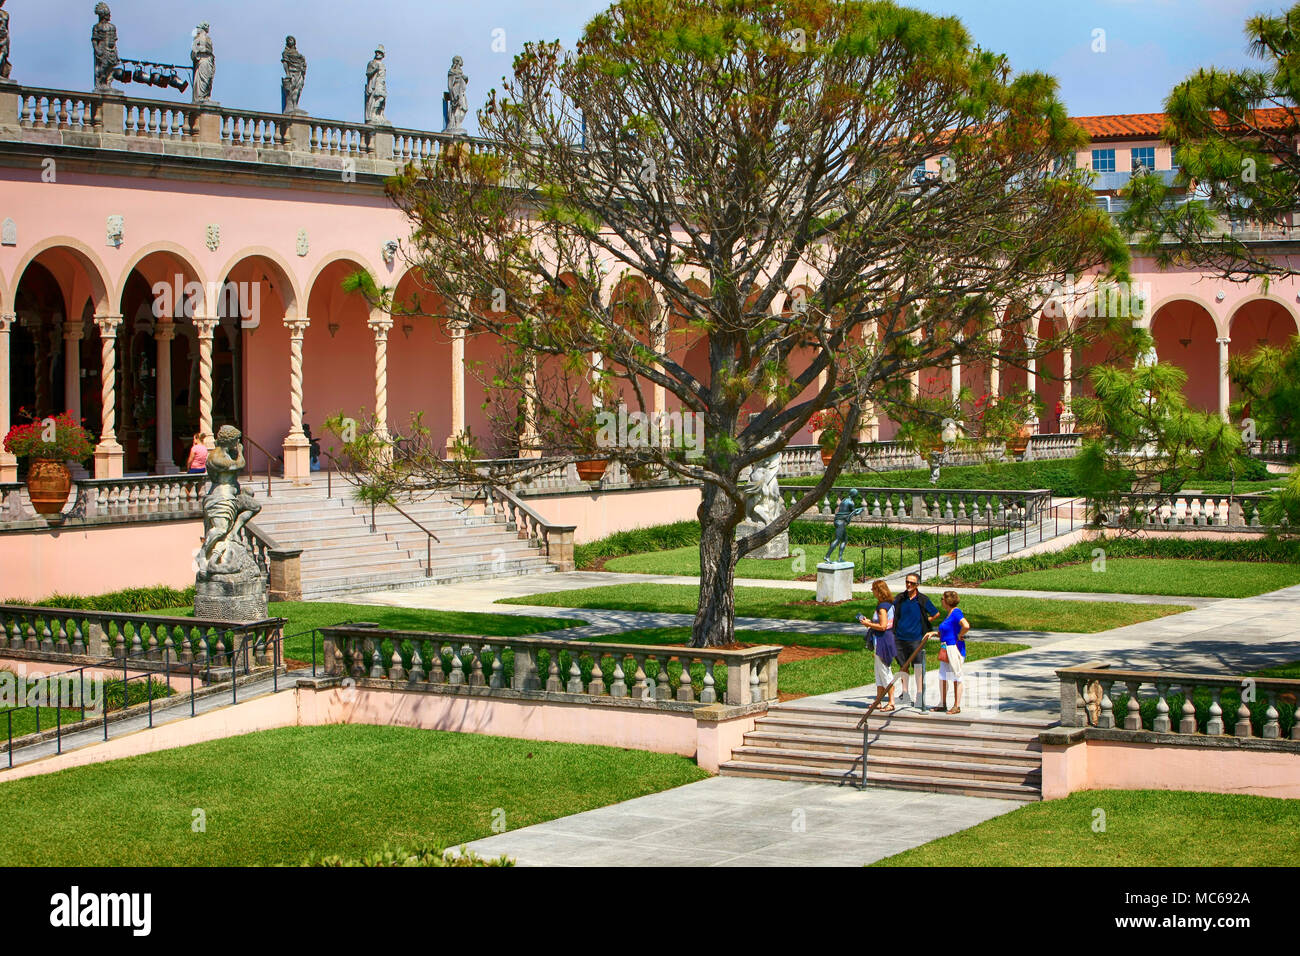 The Courtyard italian style gardens at the Ringling Museum in ...